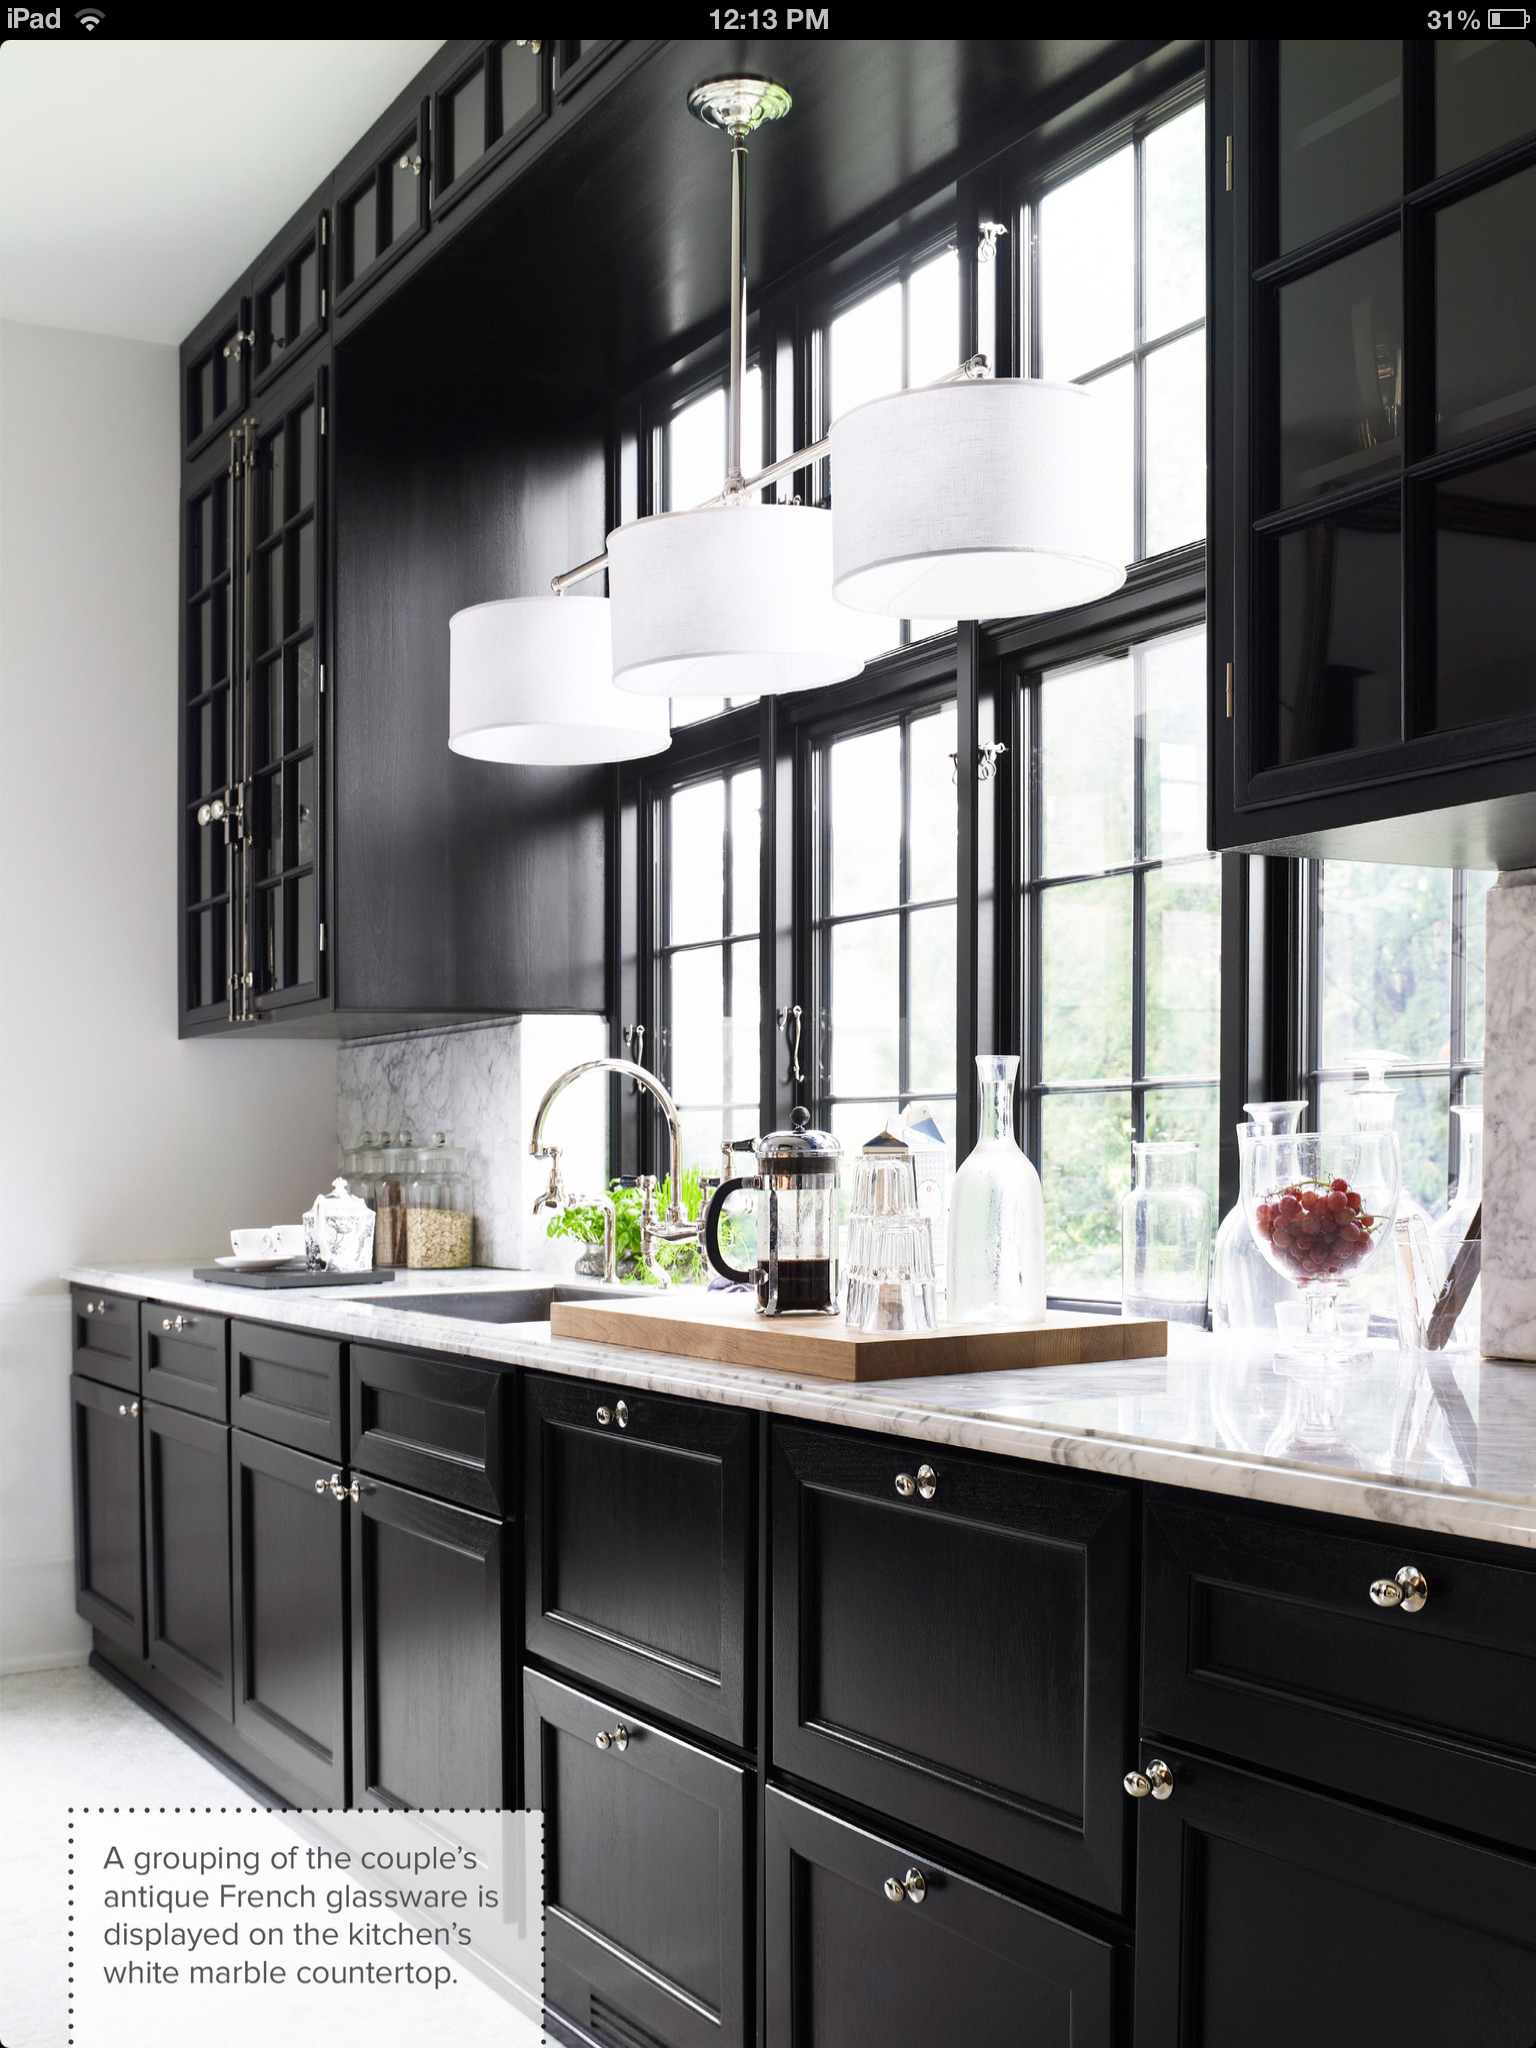 White kitchen cabinets with black doors - Black And White Kitchen With Black Shaker Style Doors And White Counter Tops Looking For Black Kitchen Black And White Kitchen Shaker Cabinet Doors